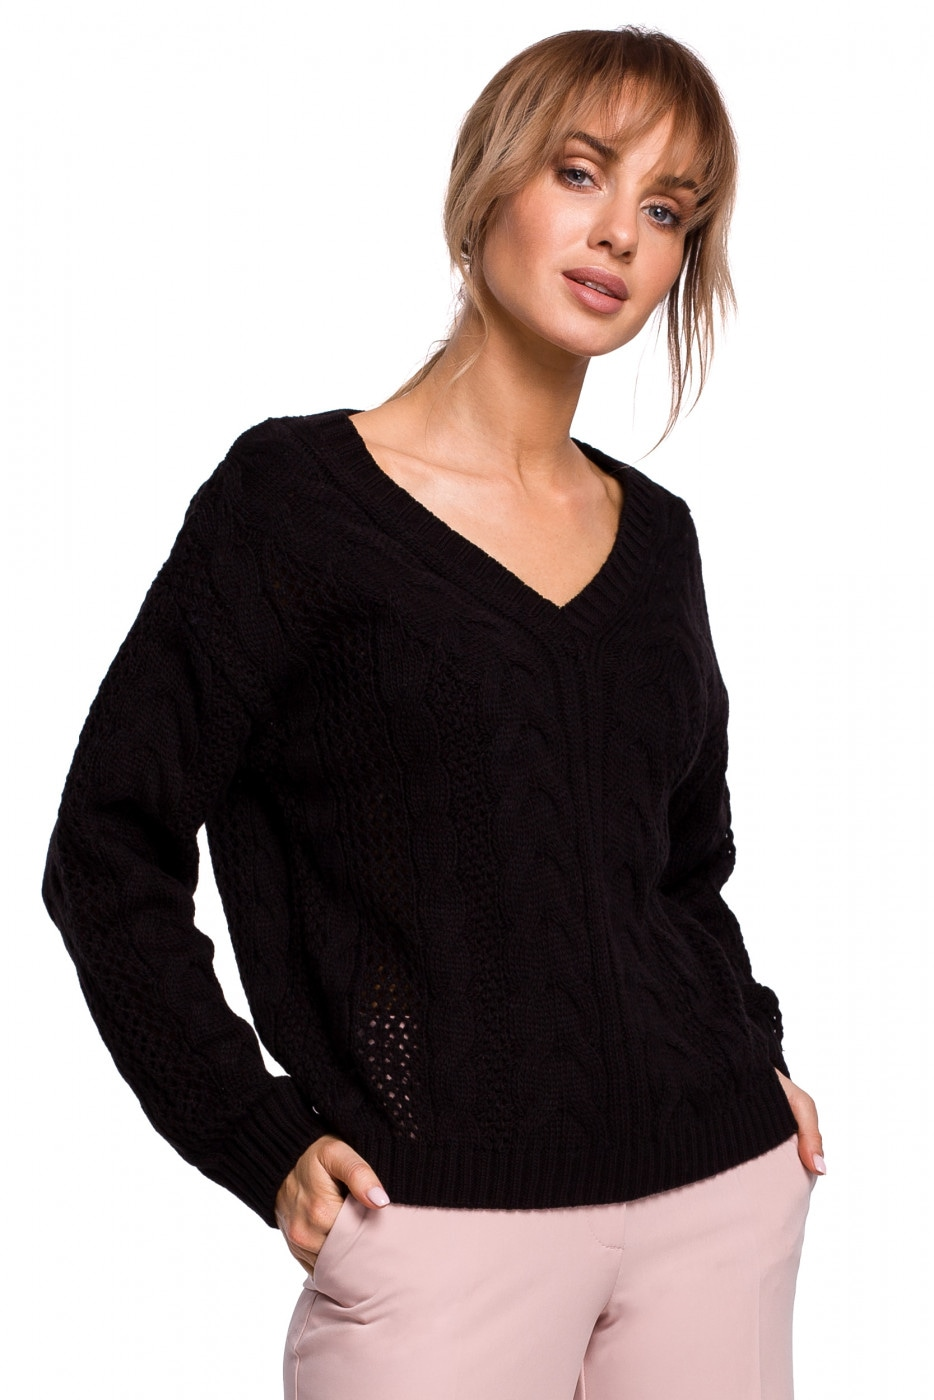 Made Of Emotion Woman's Pullover M510